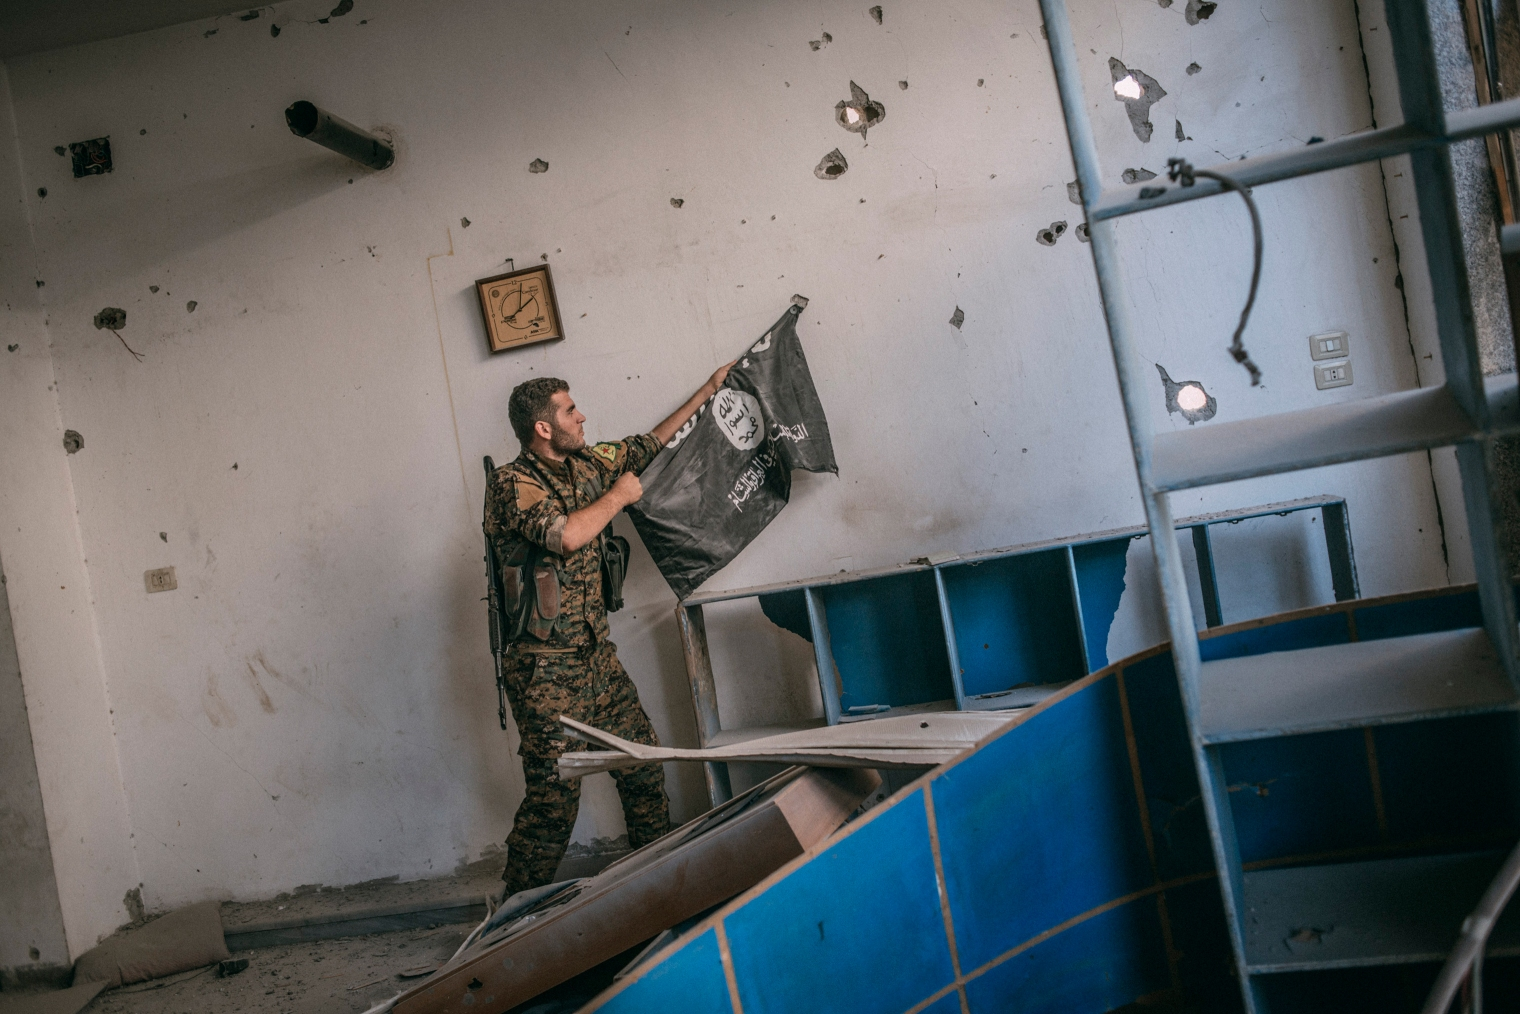 A member of the Syrian Democratic Forces removes an Islamic State flag from a wall in Raqqa on Oct. 18, 2017.